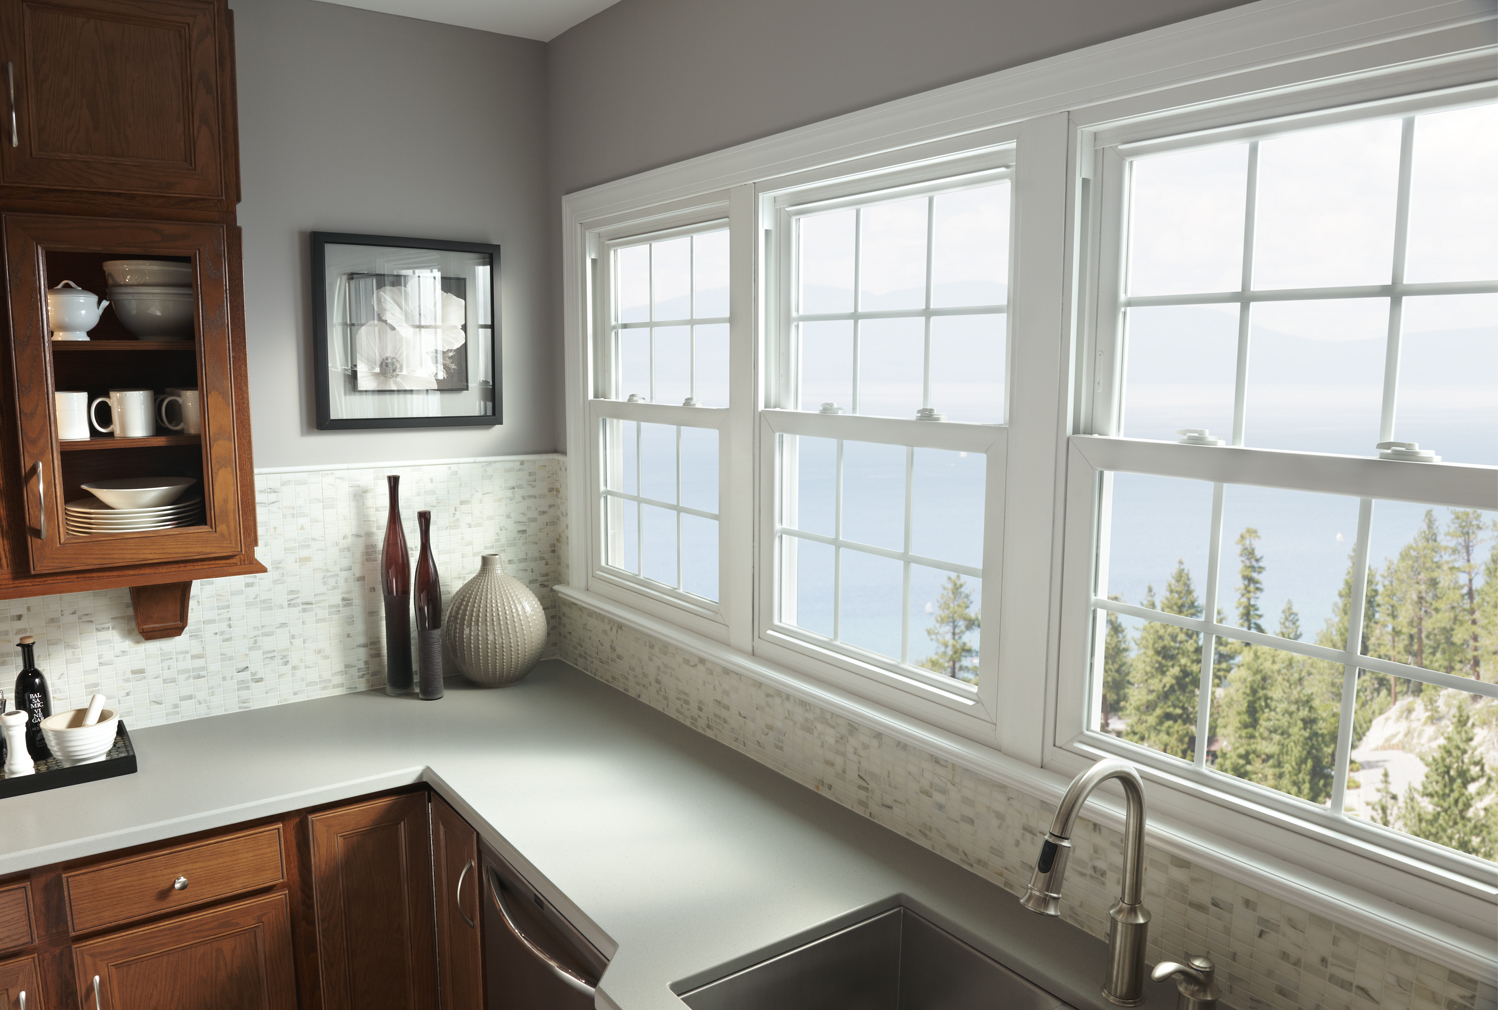 Three double hung vinyl windows over a sink in a contemporary kitchen